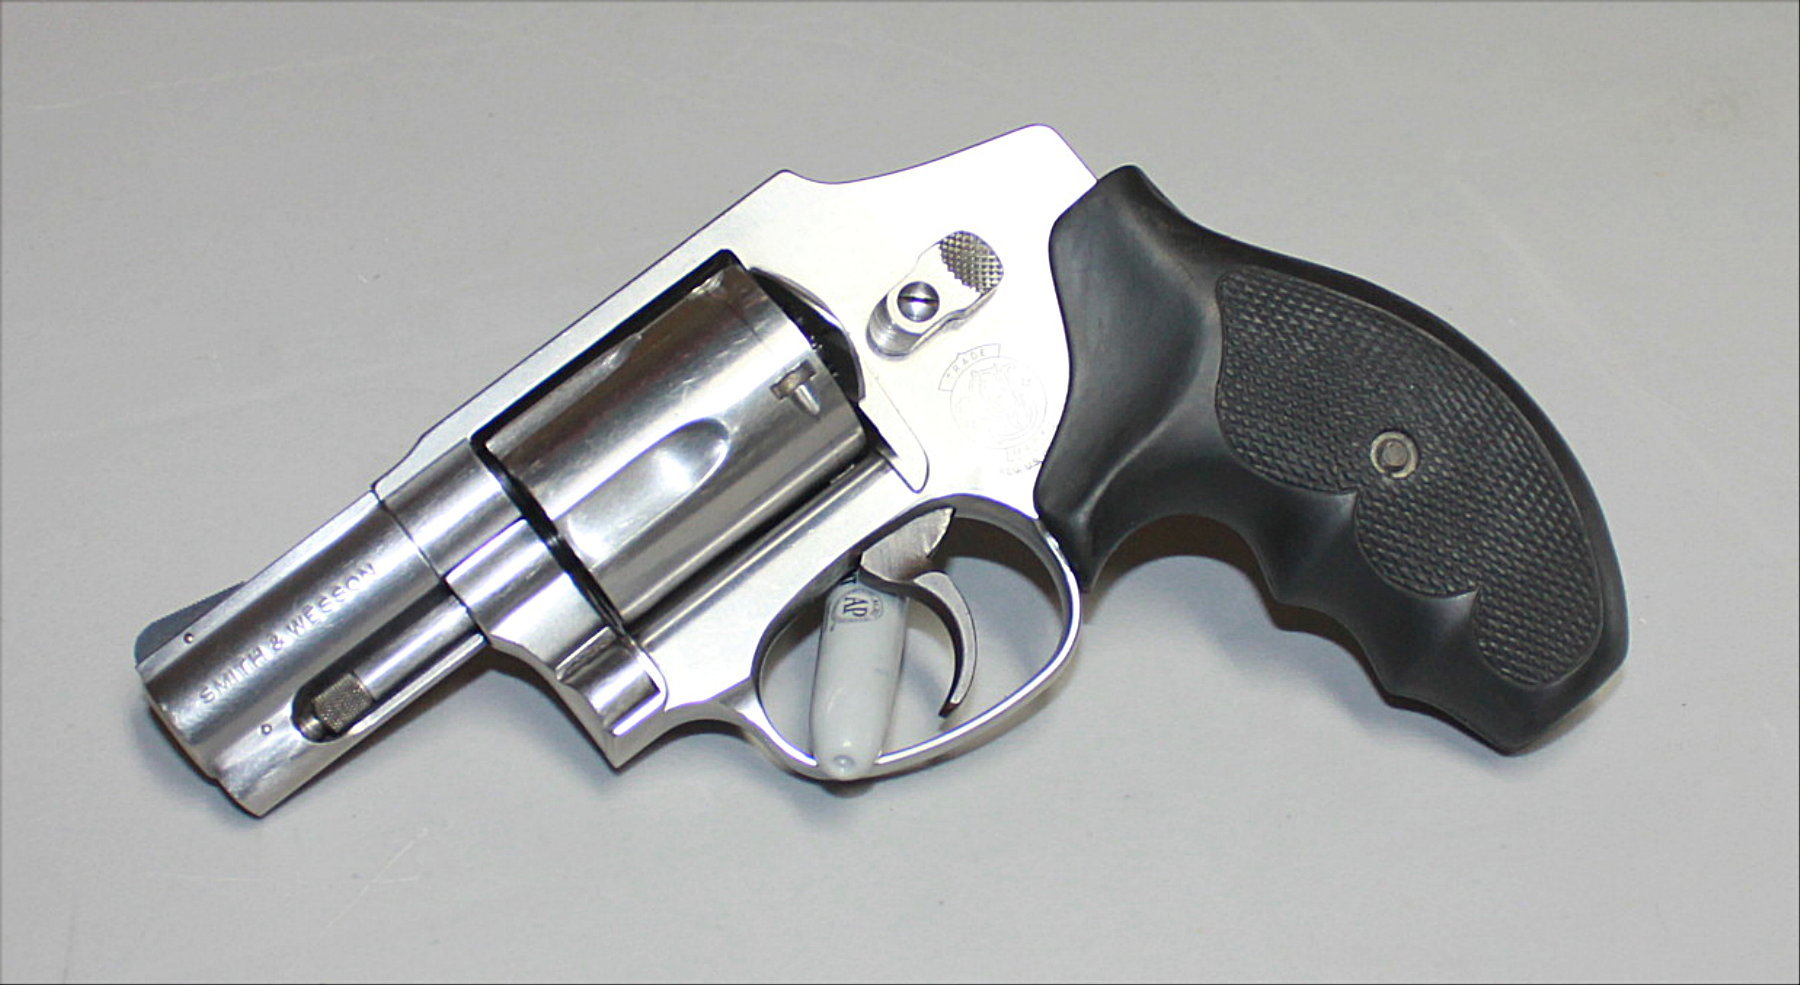 SMITH & WESSON 640-1 357 MAG REVOLVER